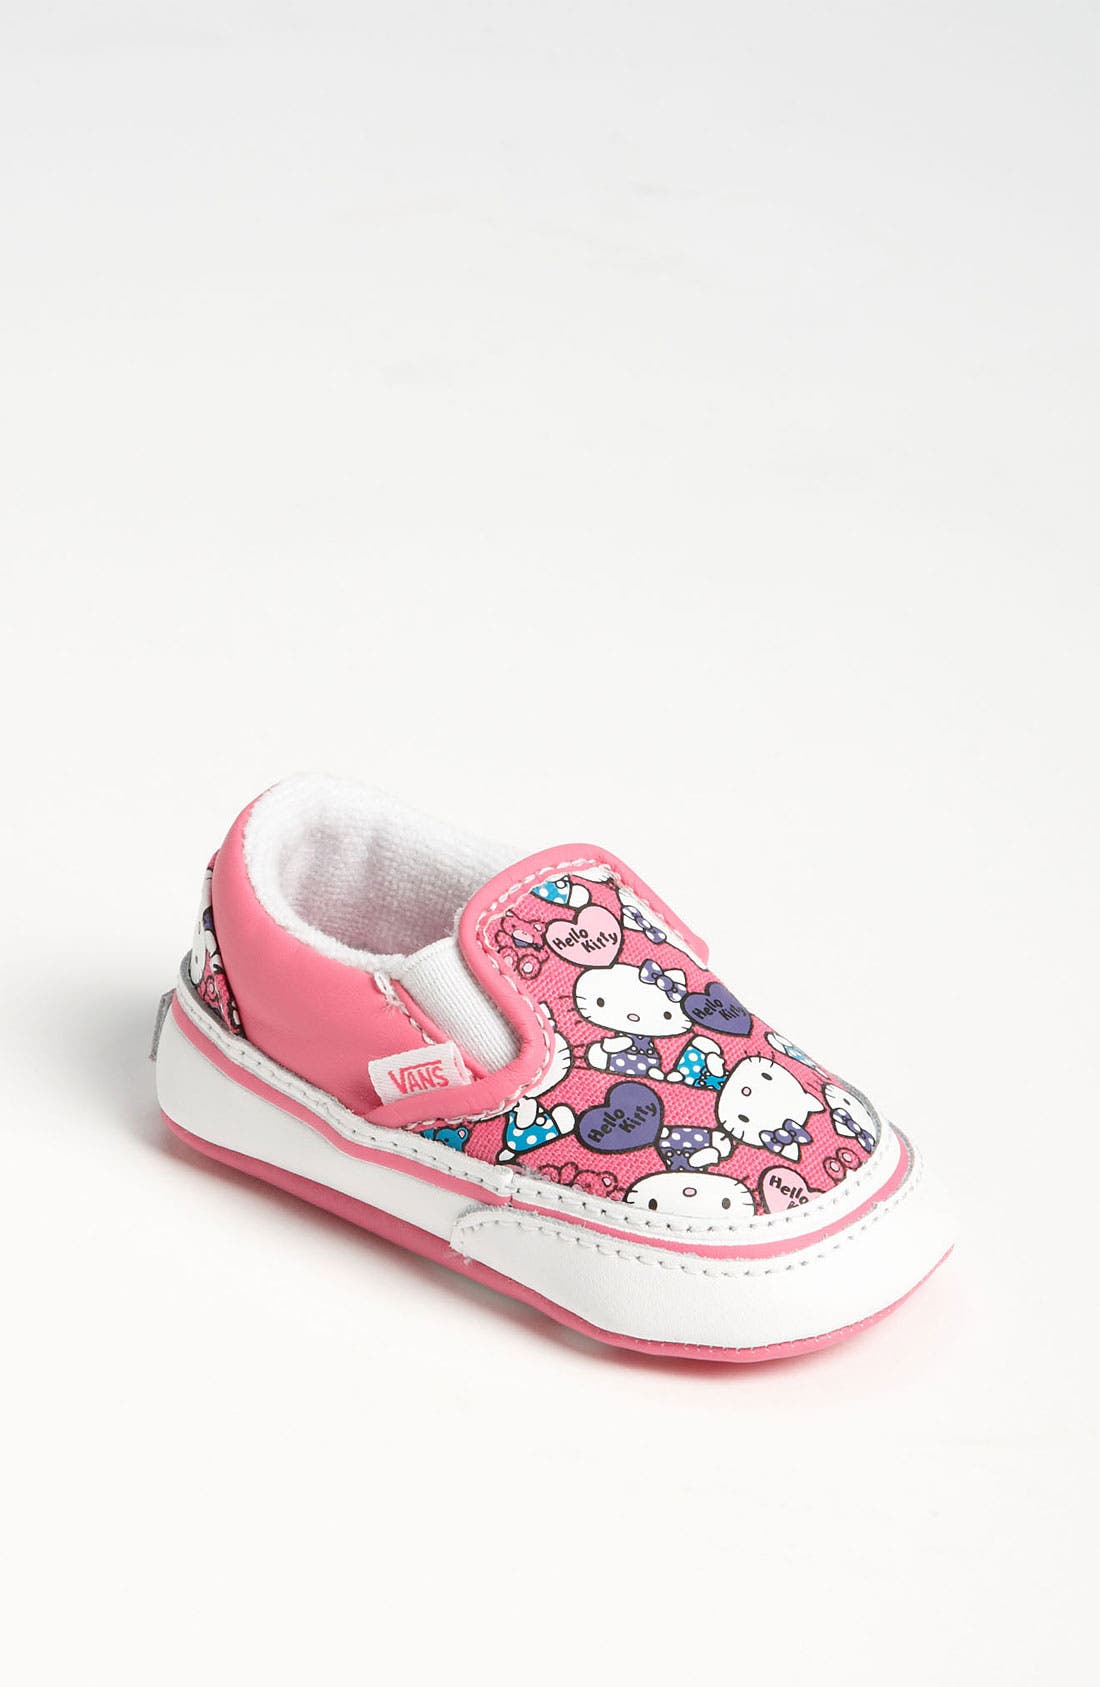 Main Image - Vans 'Classic - Hello Kitty®' Crib Shoe (Infant)